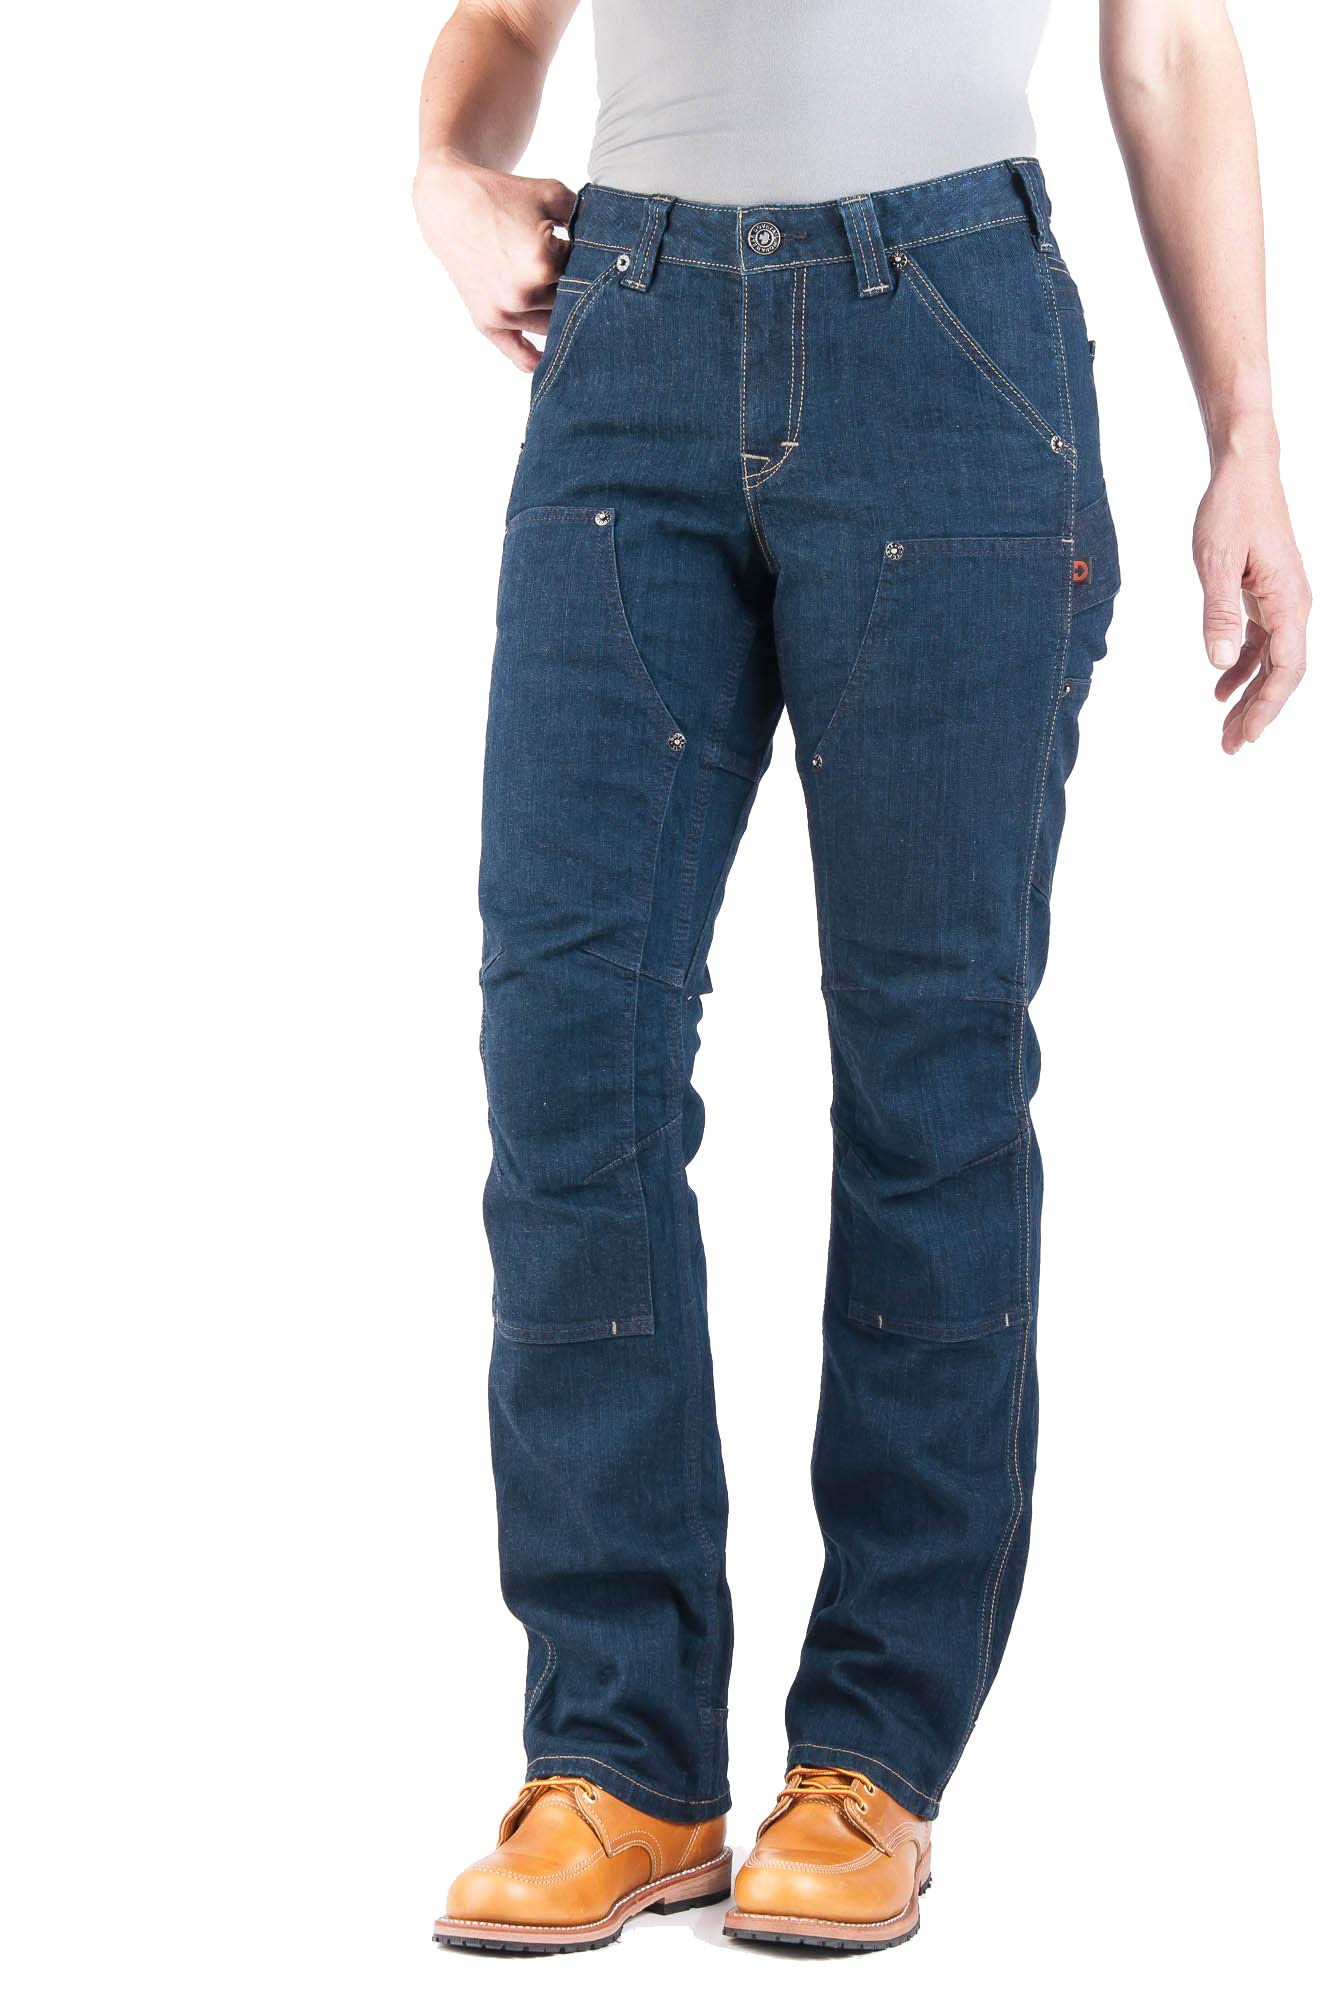 Dovetail Workwear Utility Pants for Women - Britt Utility Straight Fit Stretch Cargo Pant - Available in Denim or Canvas